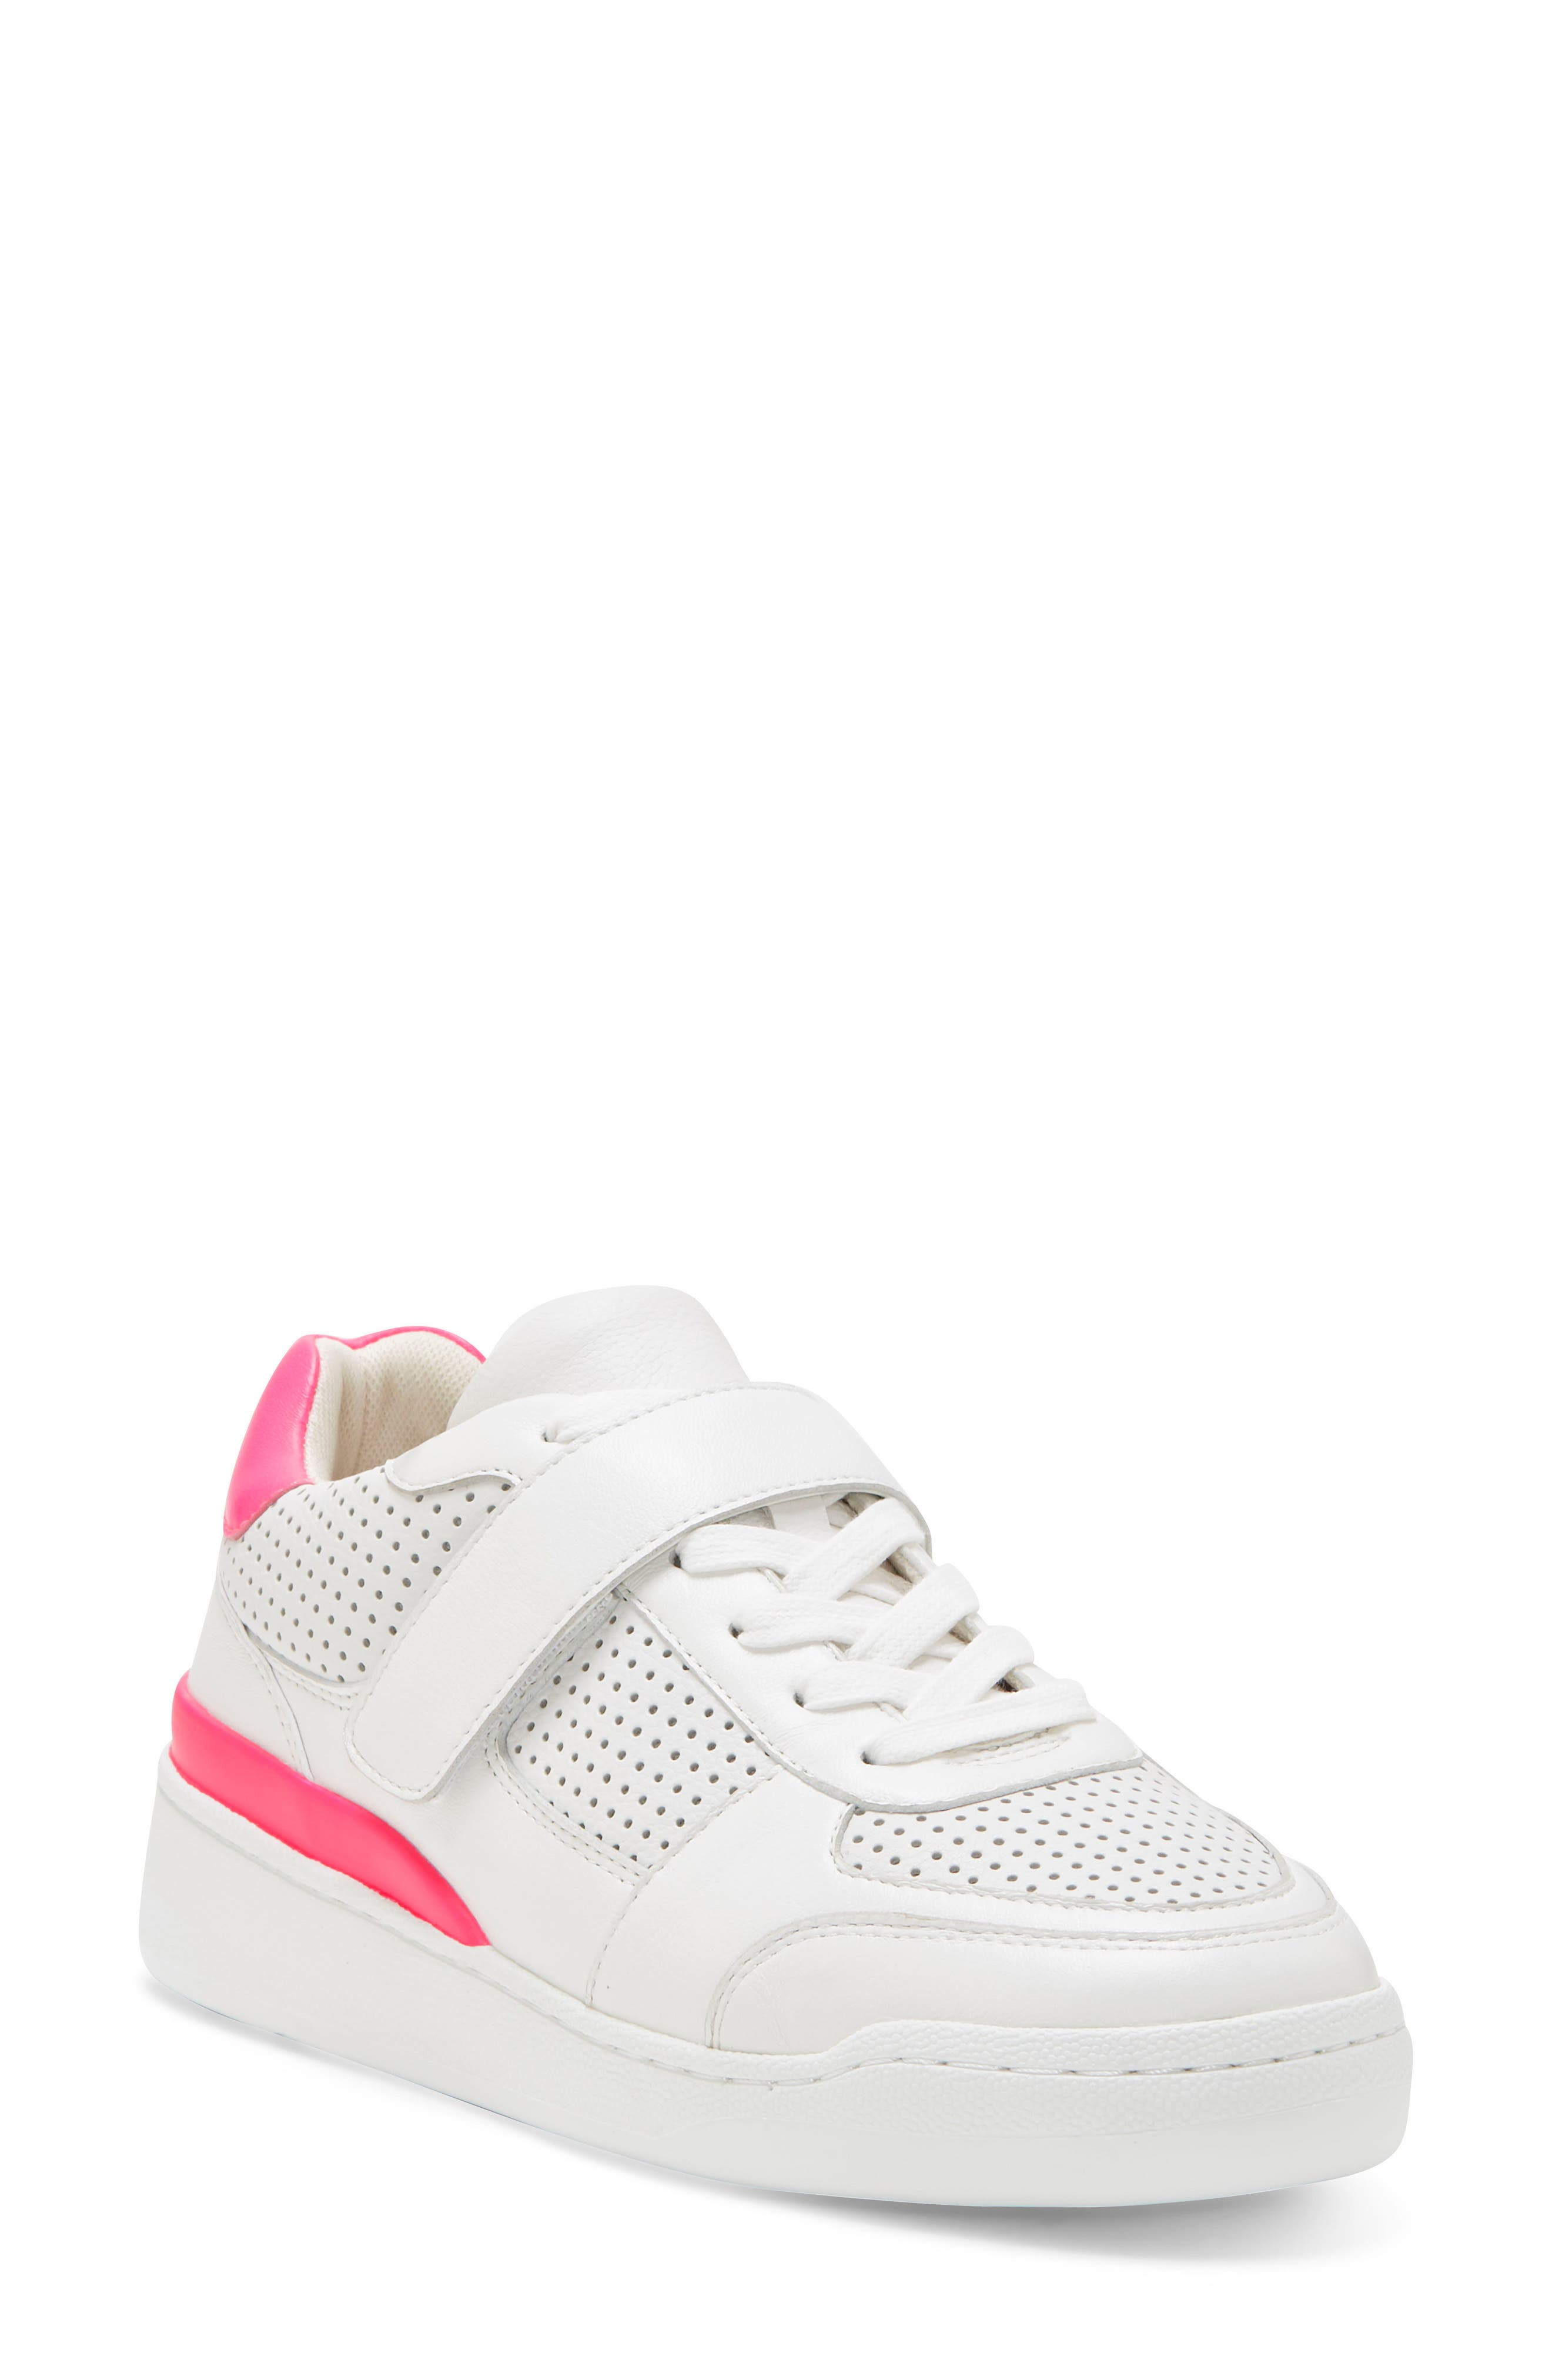 Image of Vince Camuto Sargita Leather Sneaker